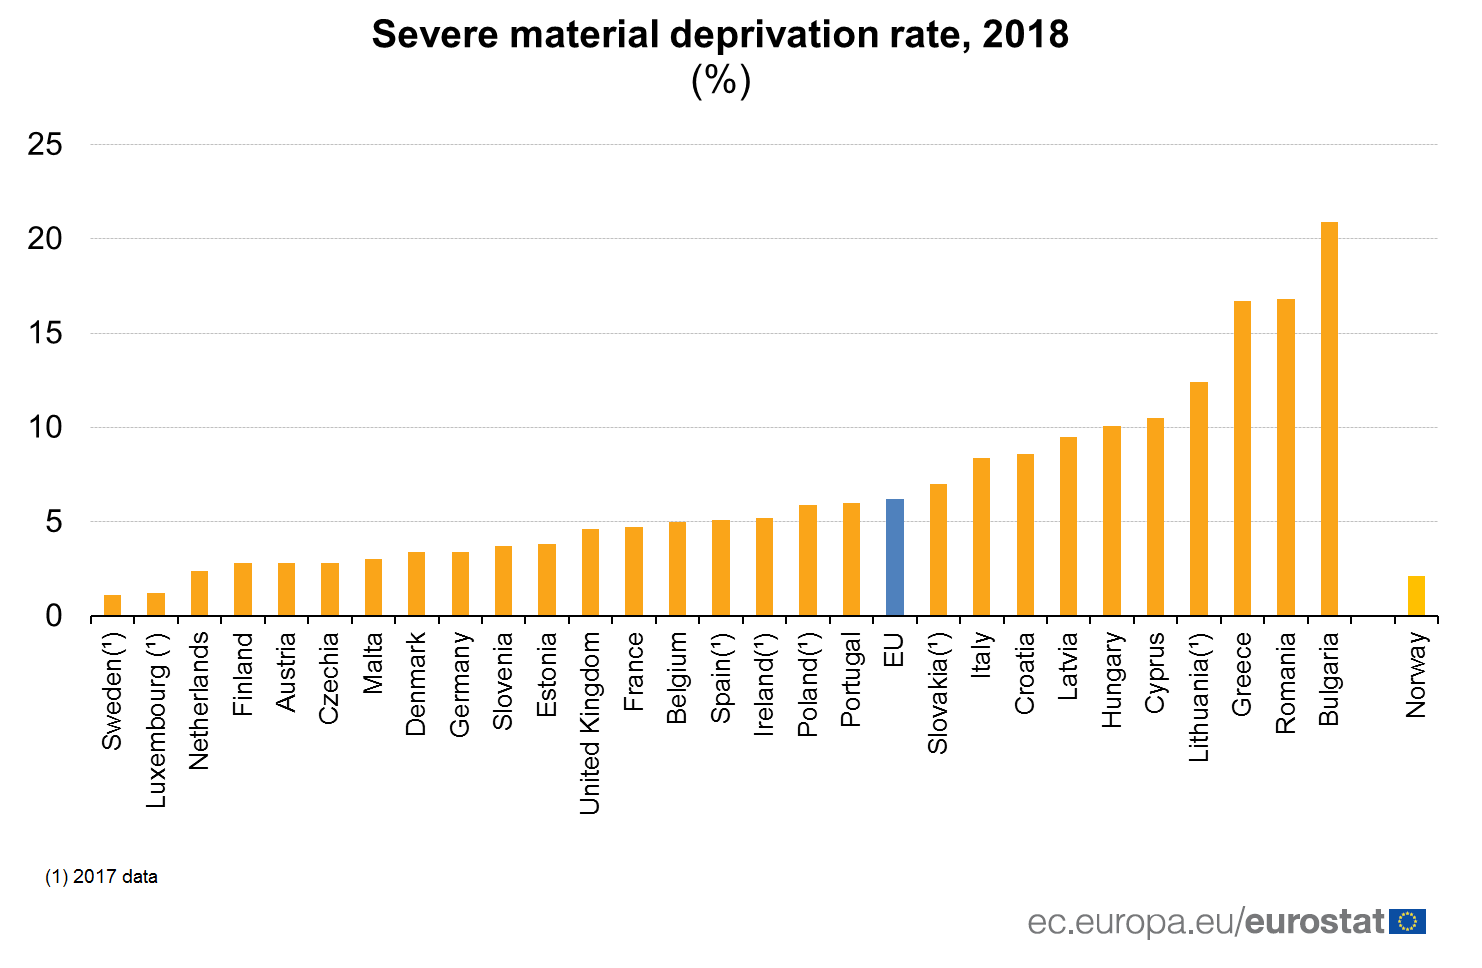 ranked bar chart of severe material deprivation rate by country for 2018